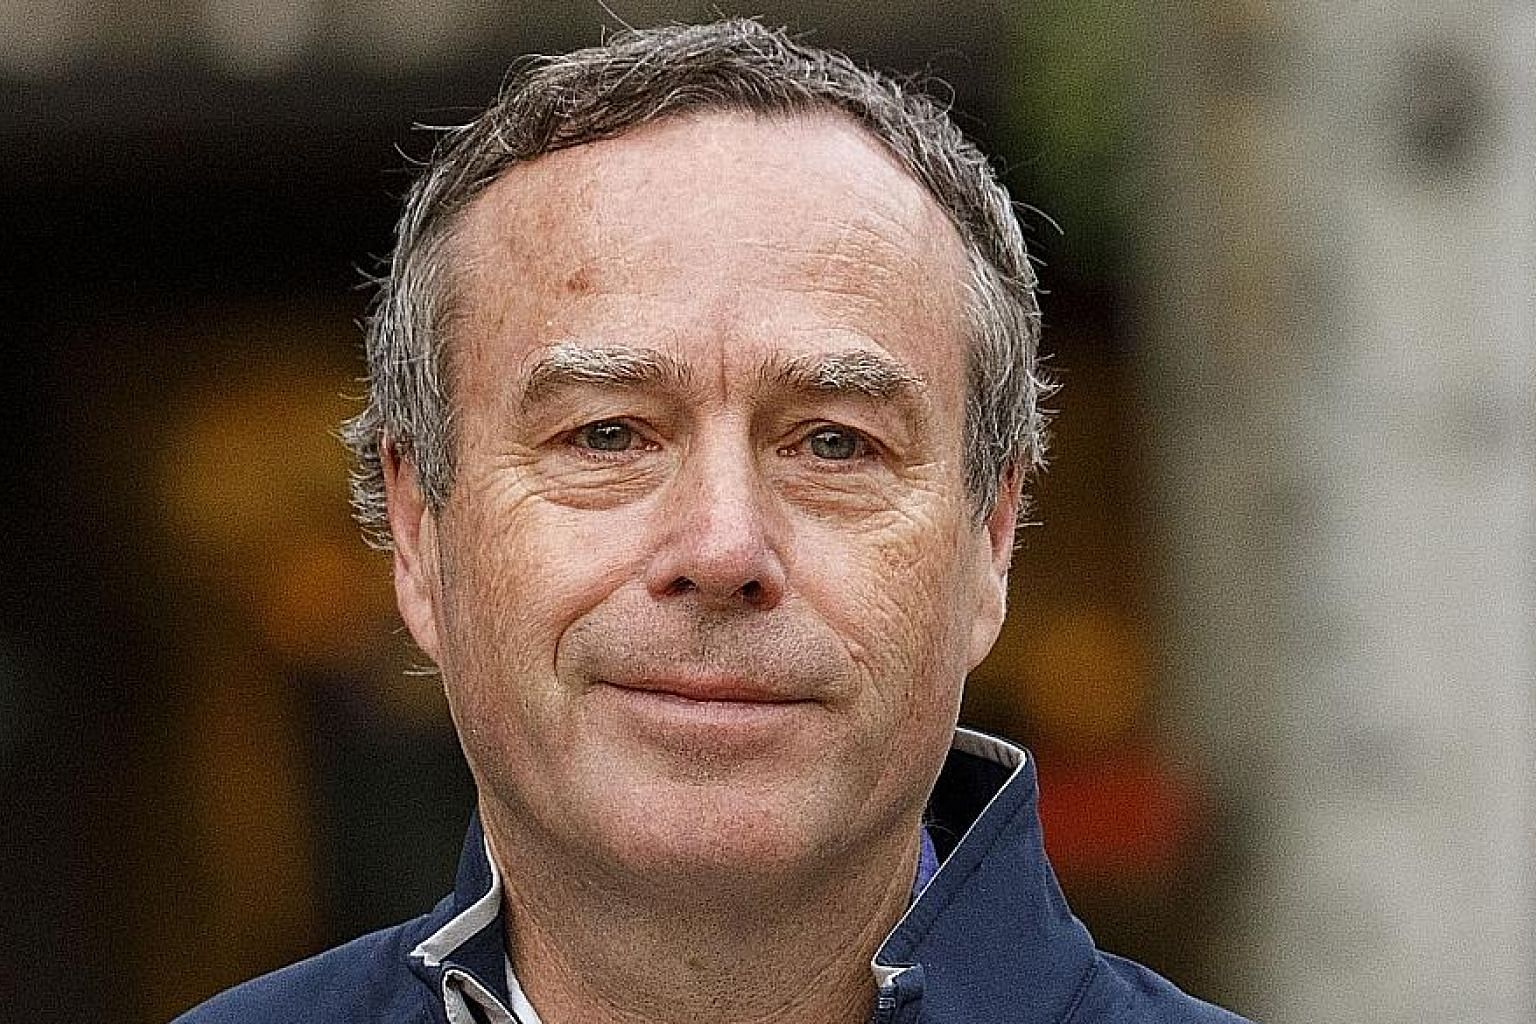 Editor Lionel Barber of the Financial Times, which said it rejected Wirecard's allegations.